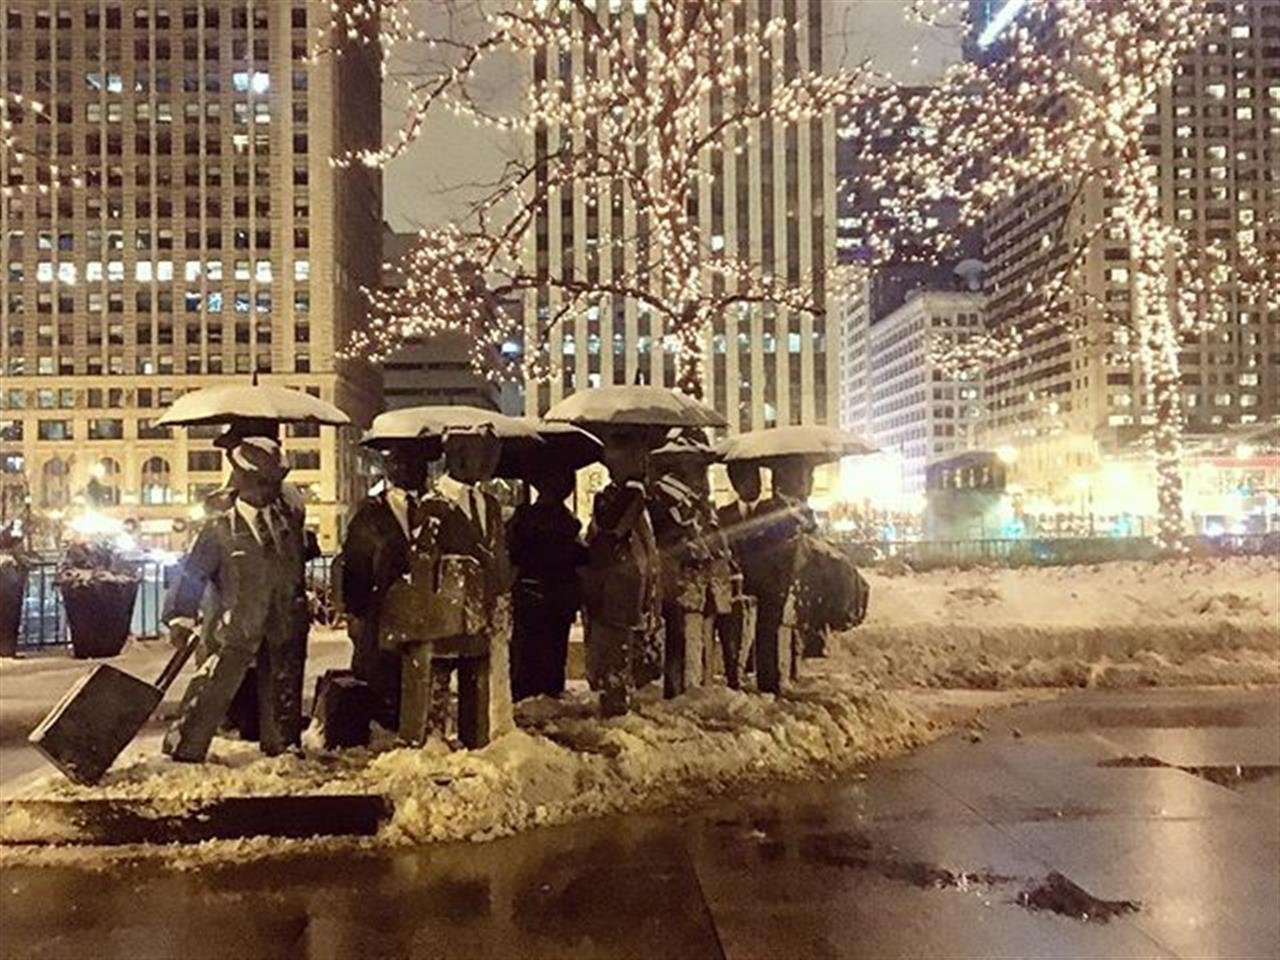 Business men and travelers trudging through #Chicago snowfall. #winter #snow #loop #rivernorth #chicagoart #publicart #bairdwarner #leadingrelocal #walkingabout #lights #chicagoriver